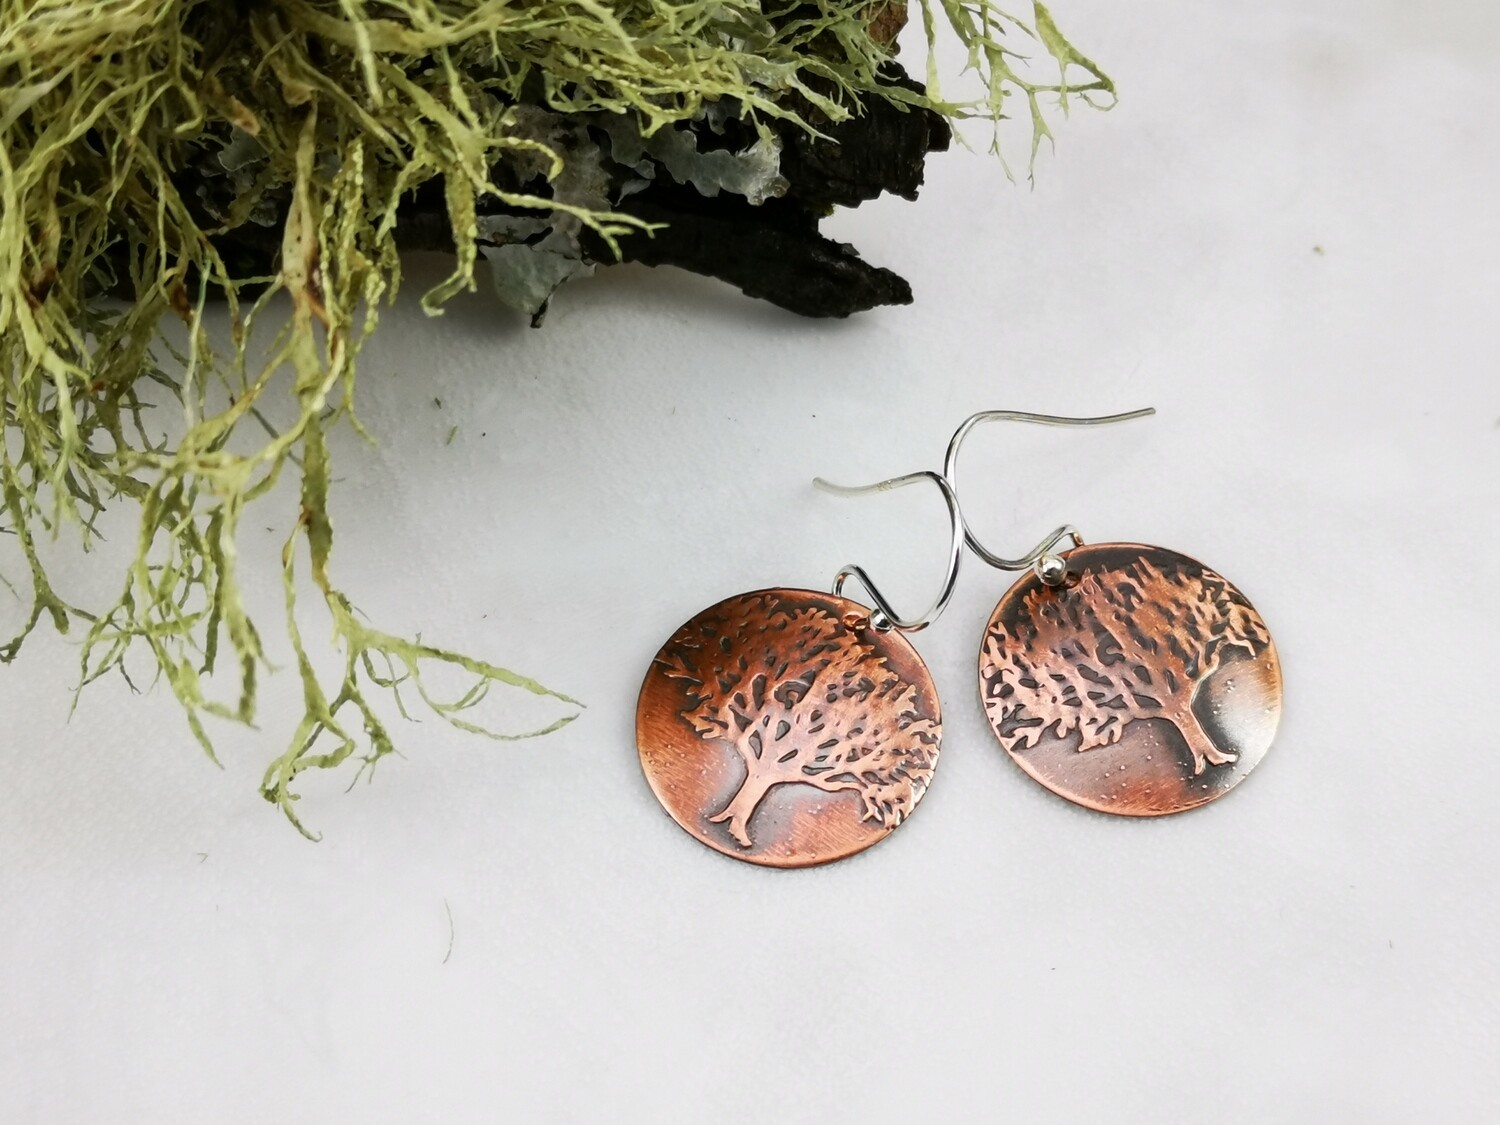 Tree of Life Textured Copper Earrings on Sterling Silver Ear Wires